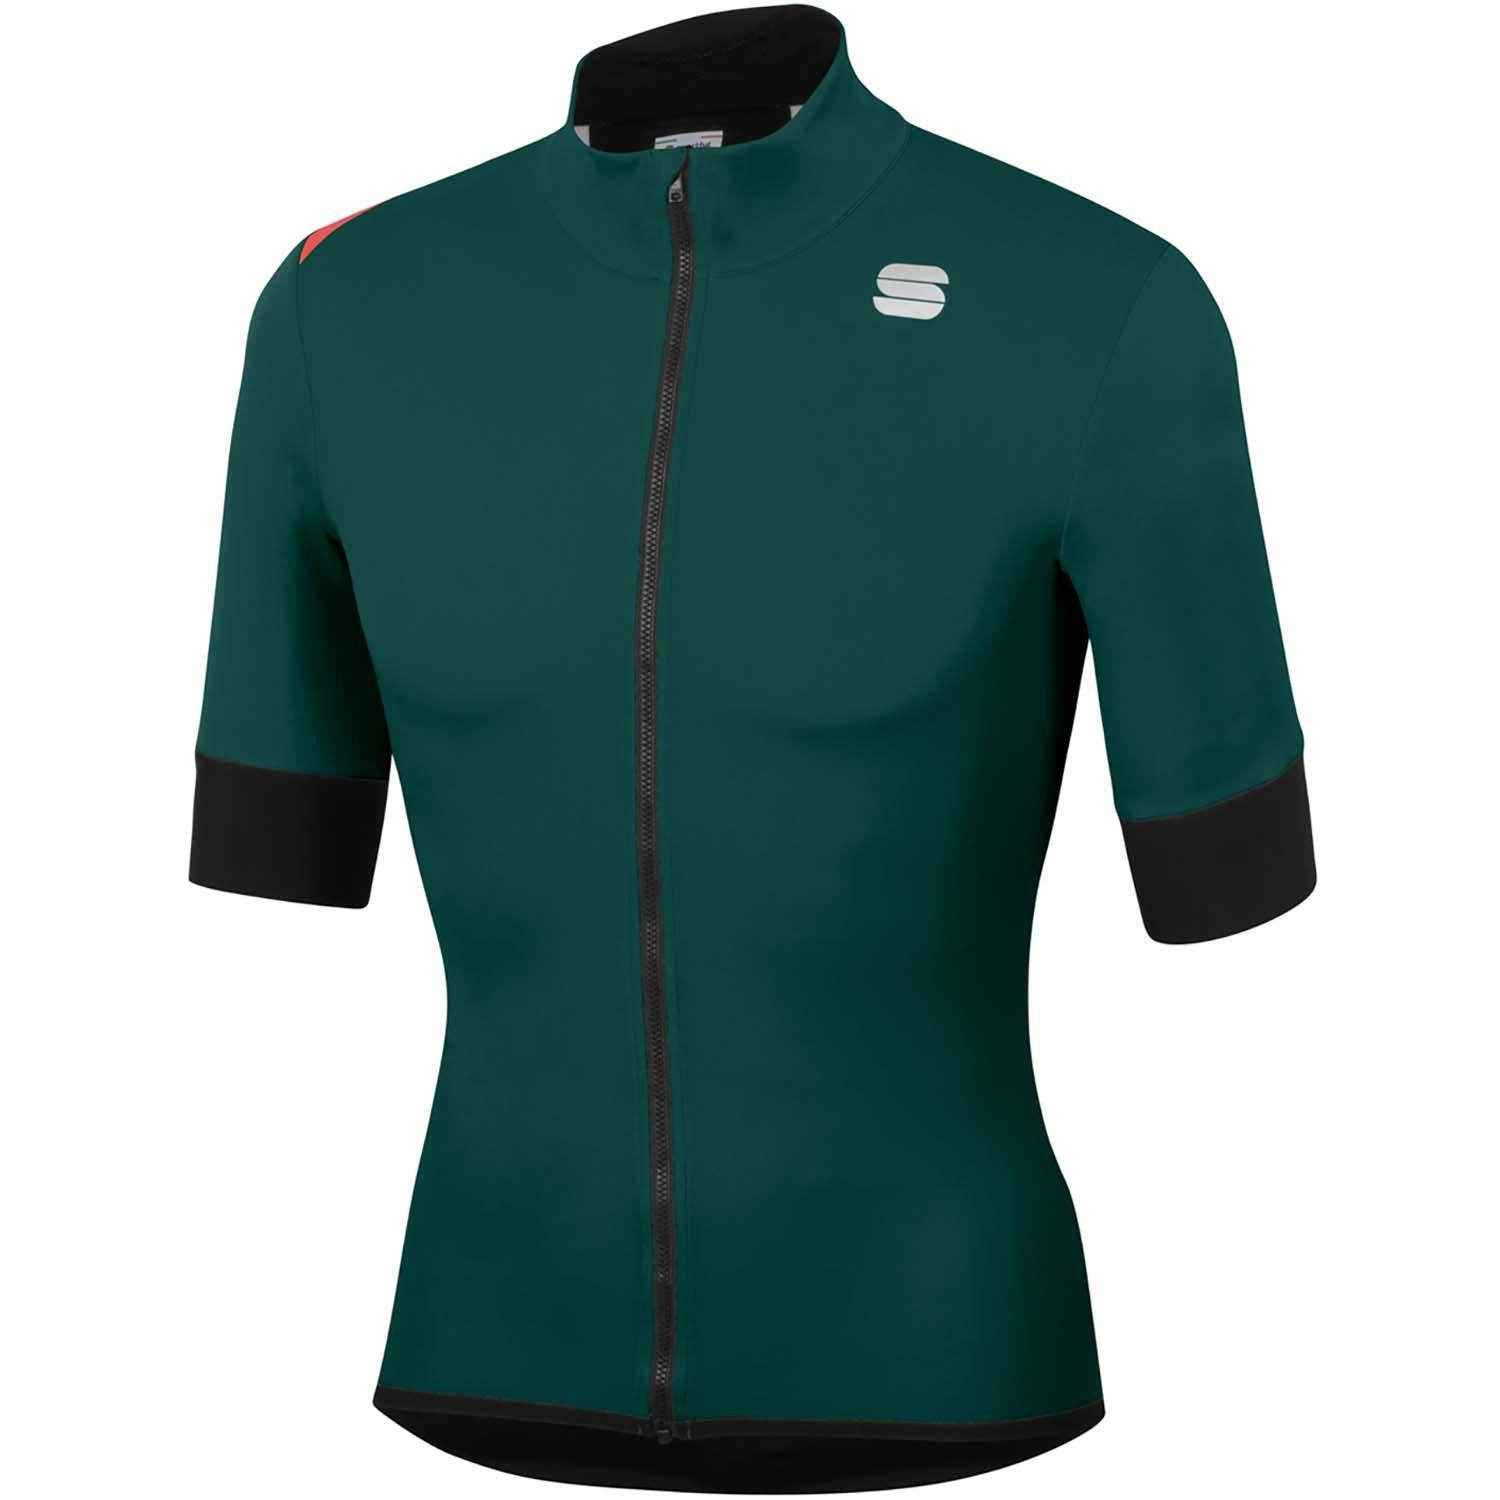 Sportful-Sportful Fiandre Light NoRain Short Sleeve Jacket-Sea Moss-S-SF200223292-saddleback-elite-performance-cycling